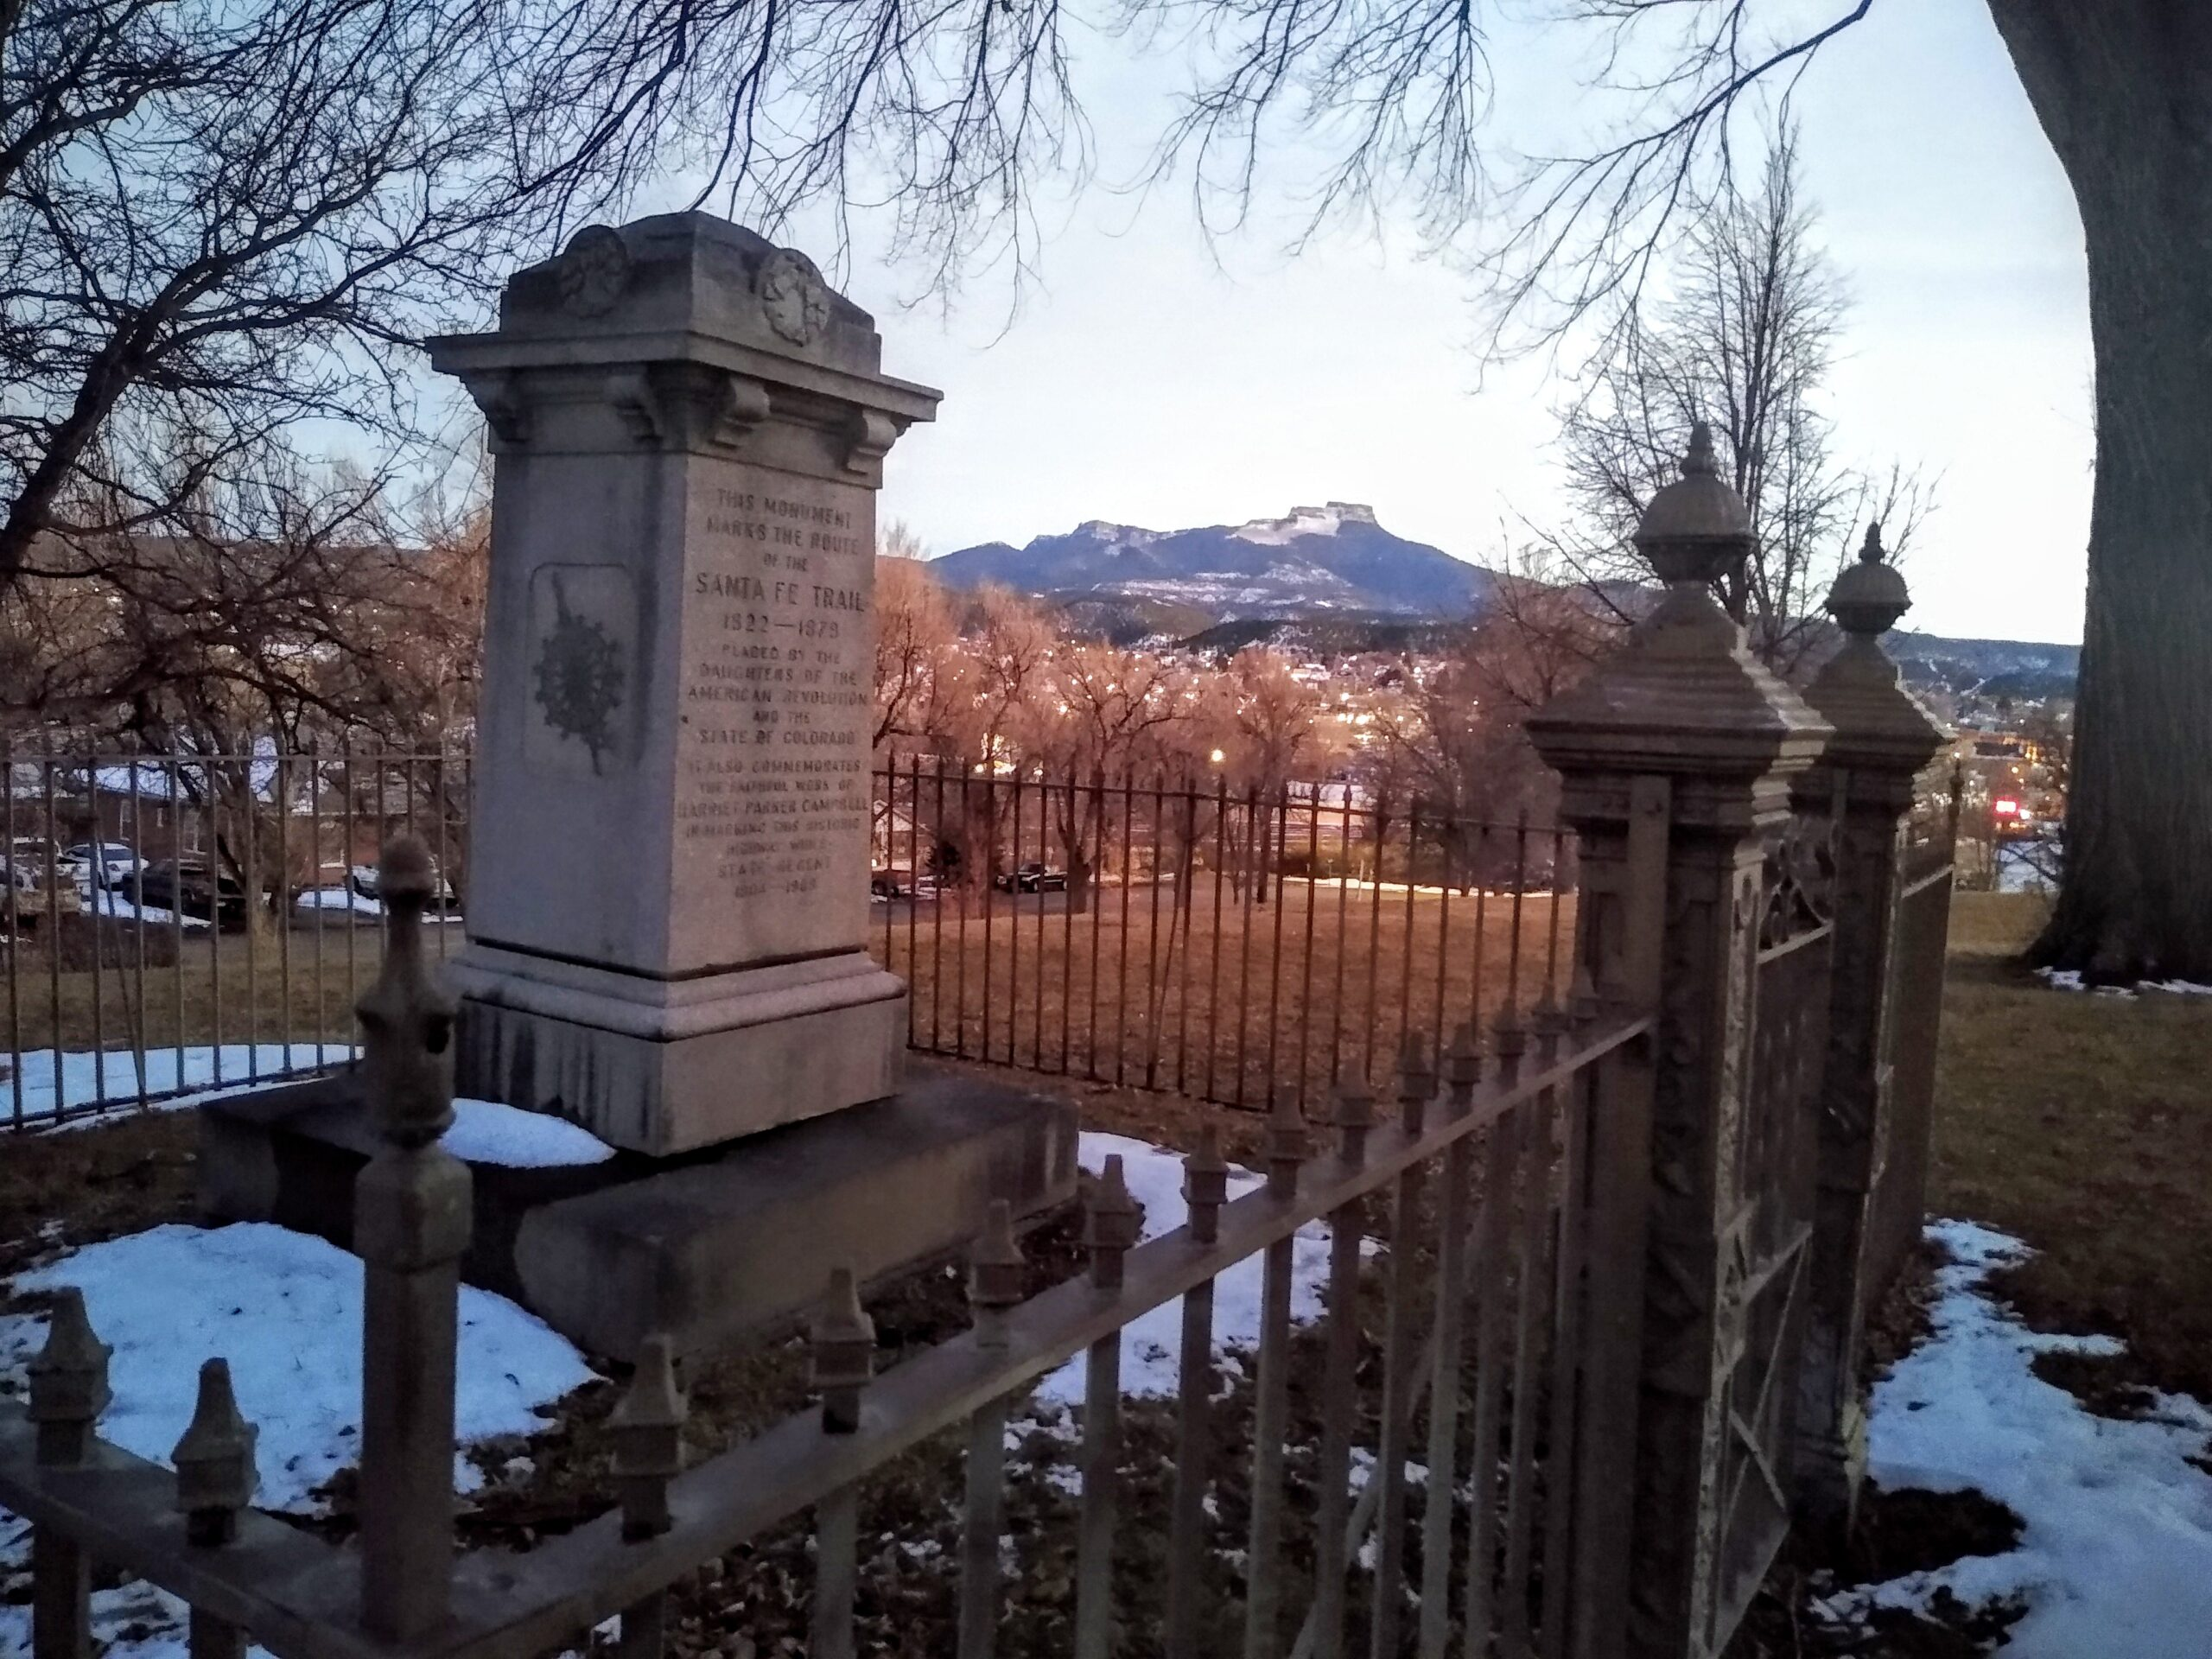 View of the Santa Fe Trail Marker in Kit Carson Park, Trinidad, Colorado, with Fisher's Peak in the background